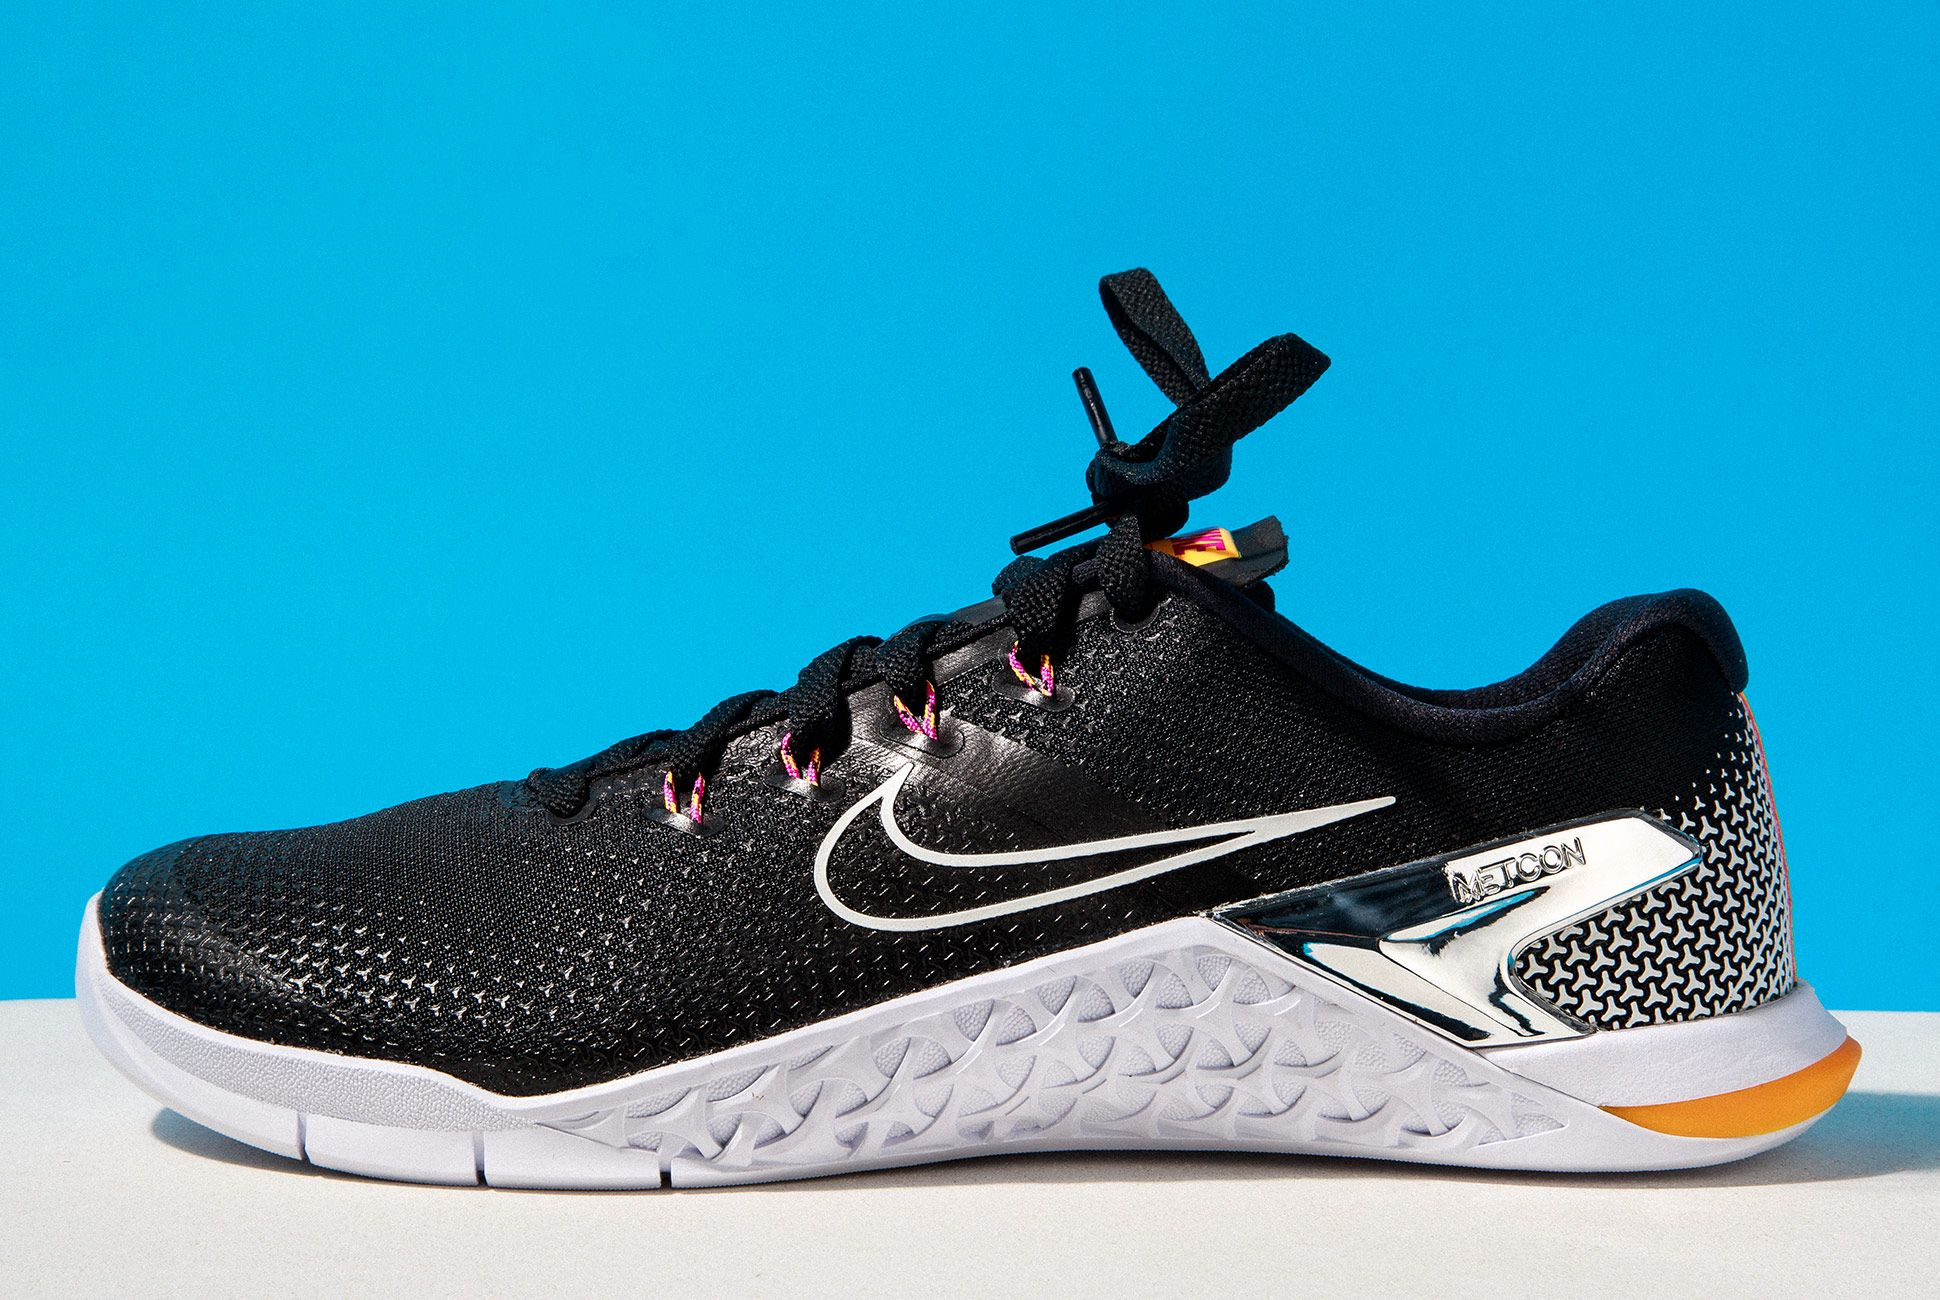 retail prices coupon code aliexpress Best New Training Shoe: Nike Metcon 4 • Gear Patrol